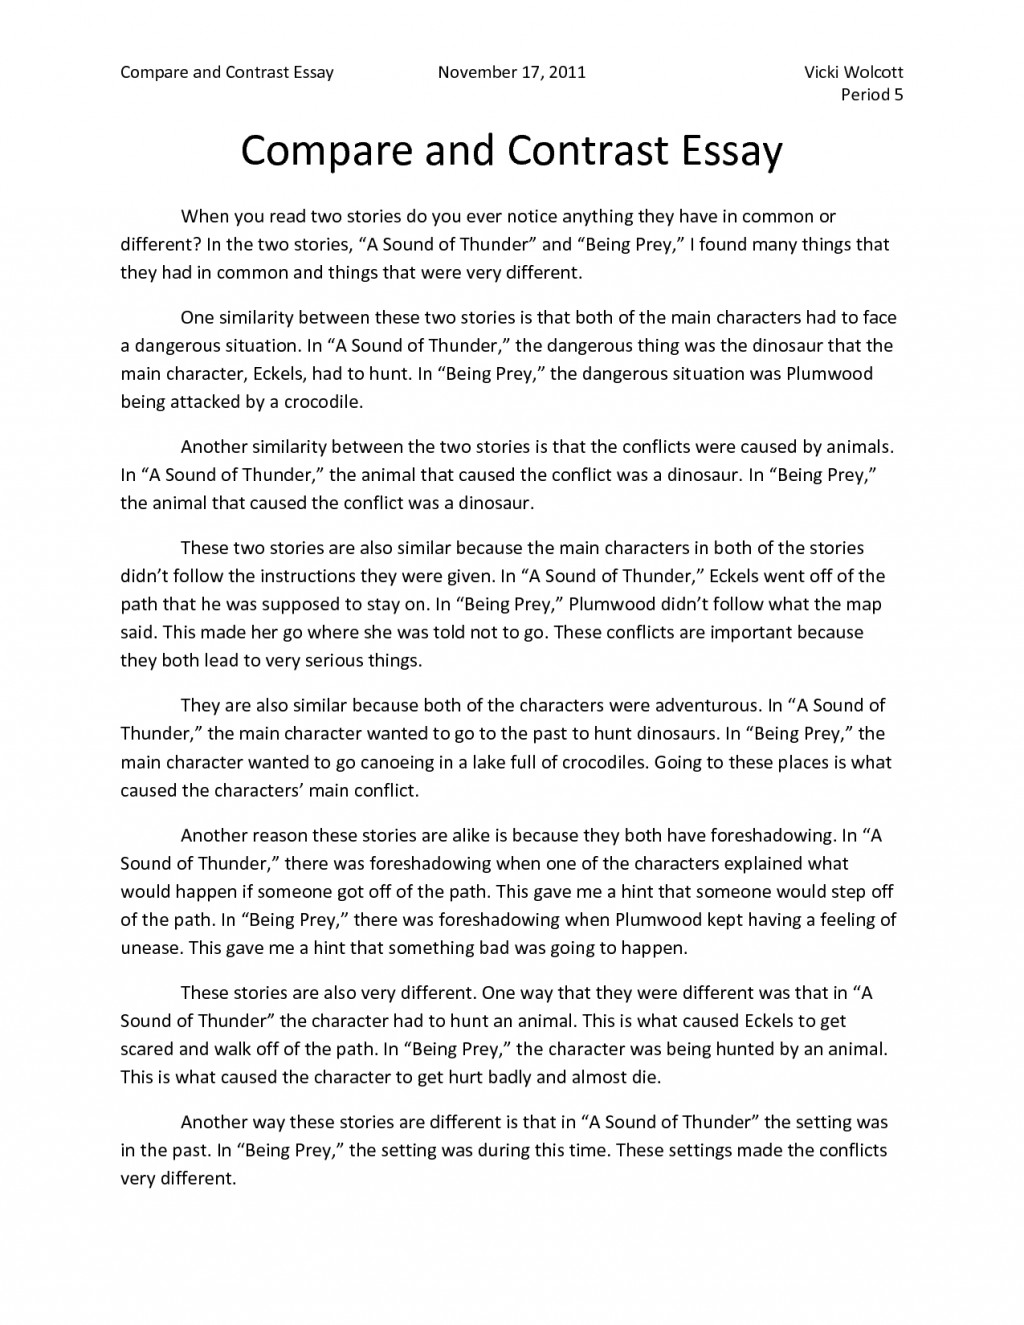 003 Perfect Essays Compare And Contrast Essay Introduction Example How To Write College Striking Comparison Examples Free Pdf 4th Grade For 5th Large